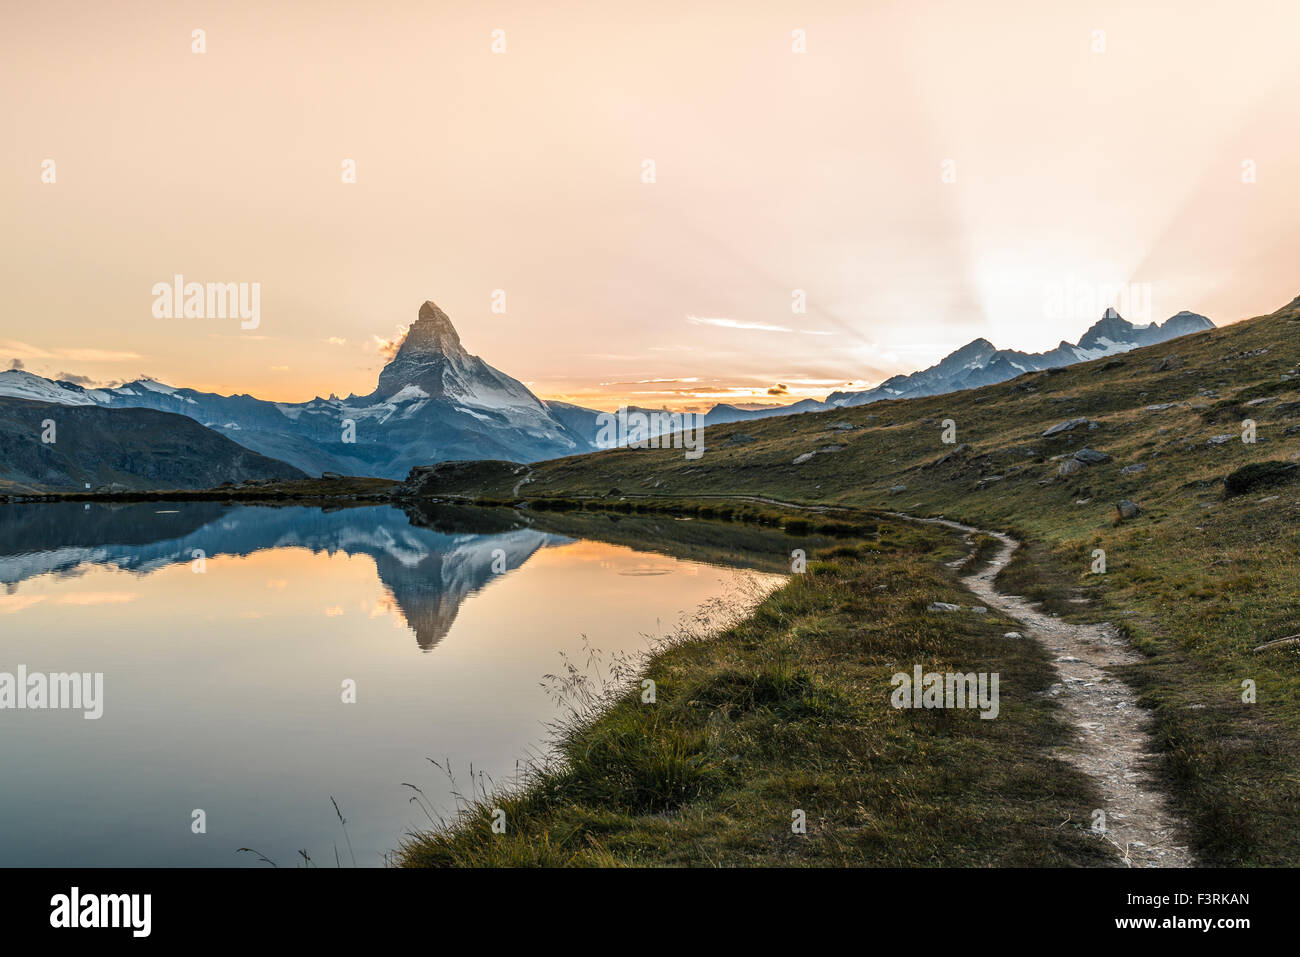 The Matterhorn reflected in Stellisee at sunset - Stock Image